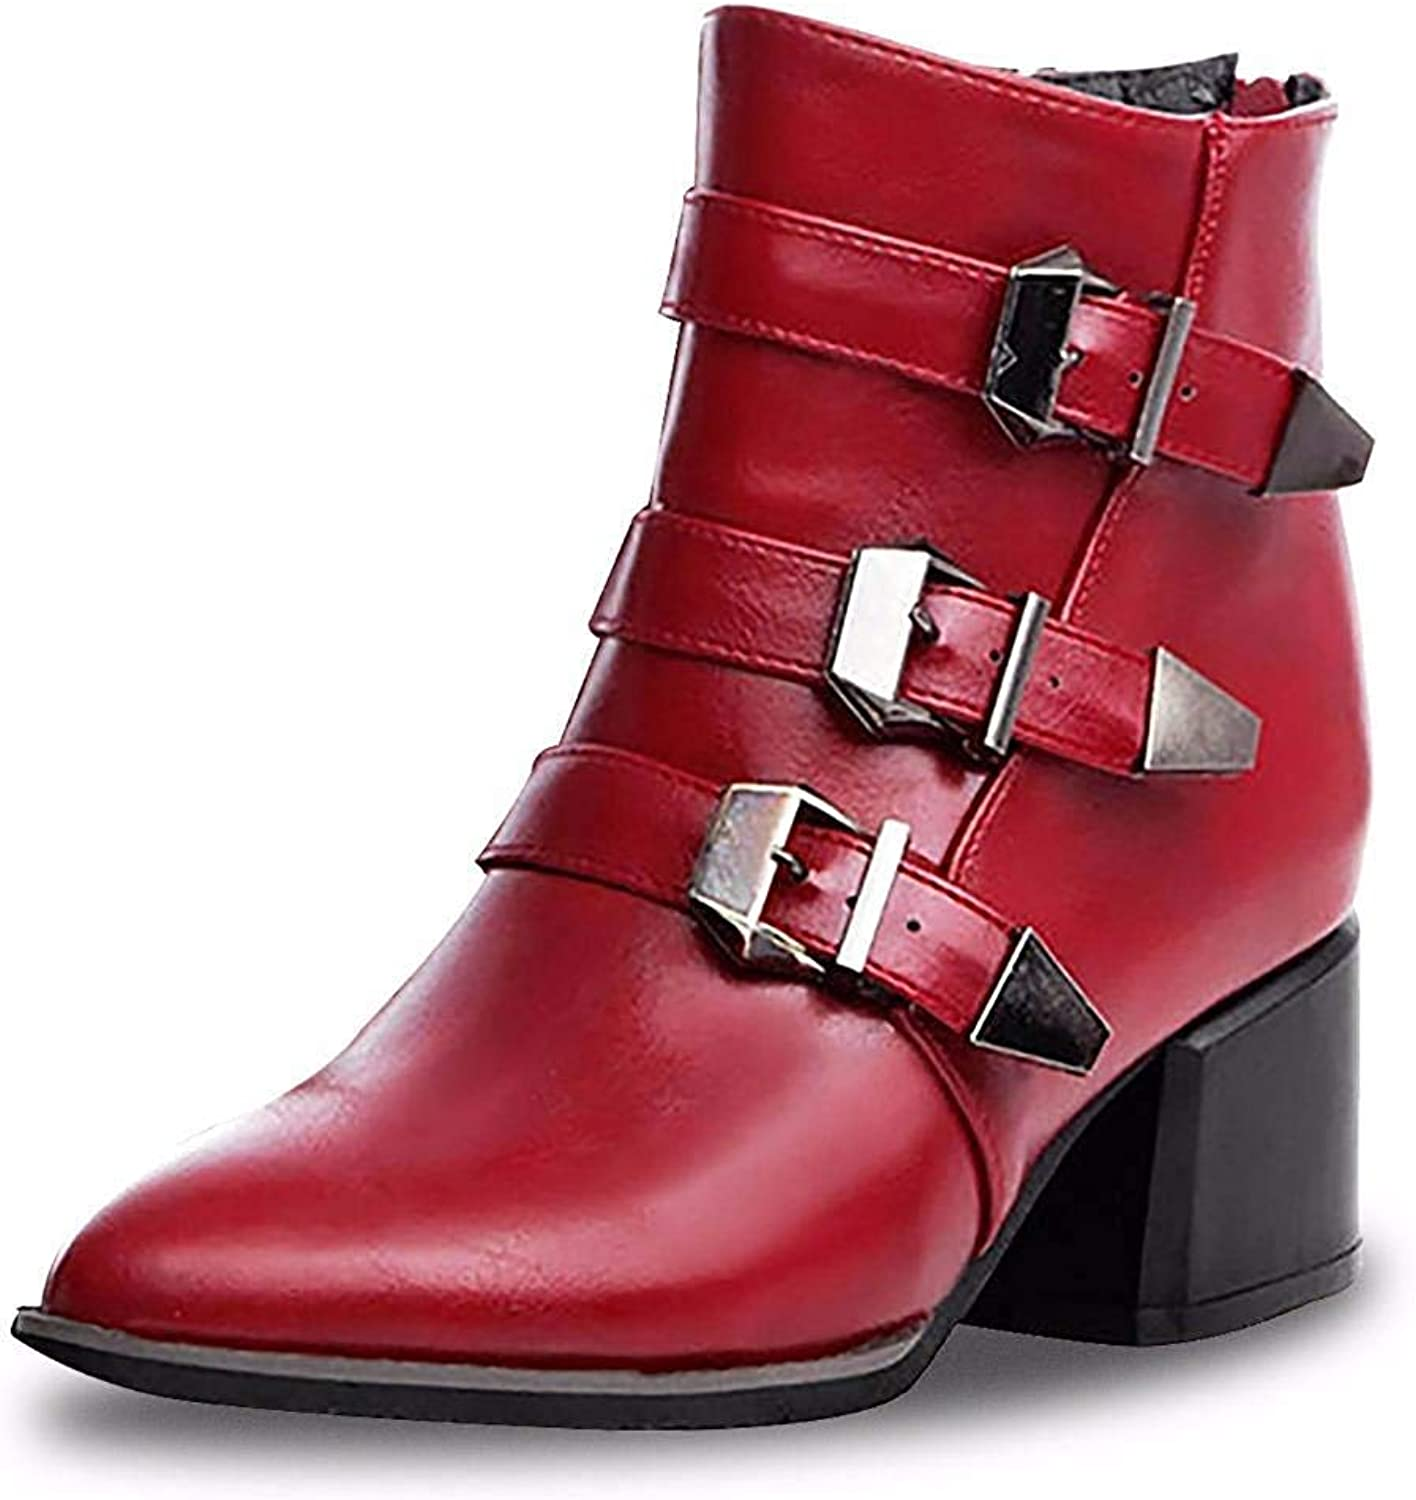 Womens Martin Boots Pointed Toe Zipper Ankle Boots Mid Heel Boots for Women